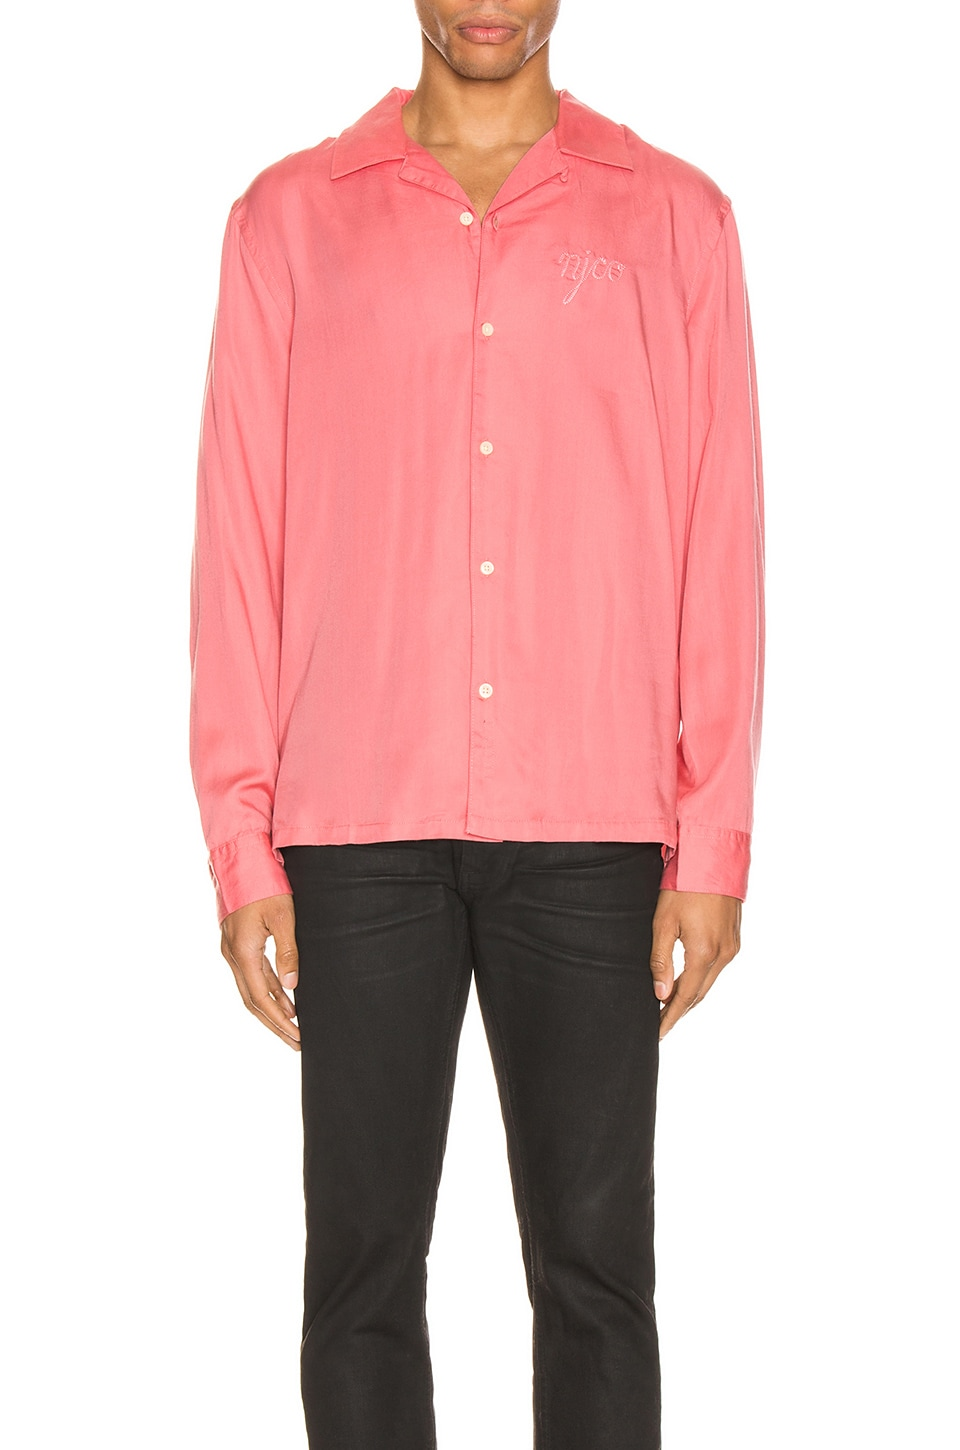 Nudie Jeans Vidar NJCO Shirt in Pink